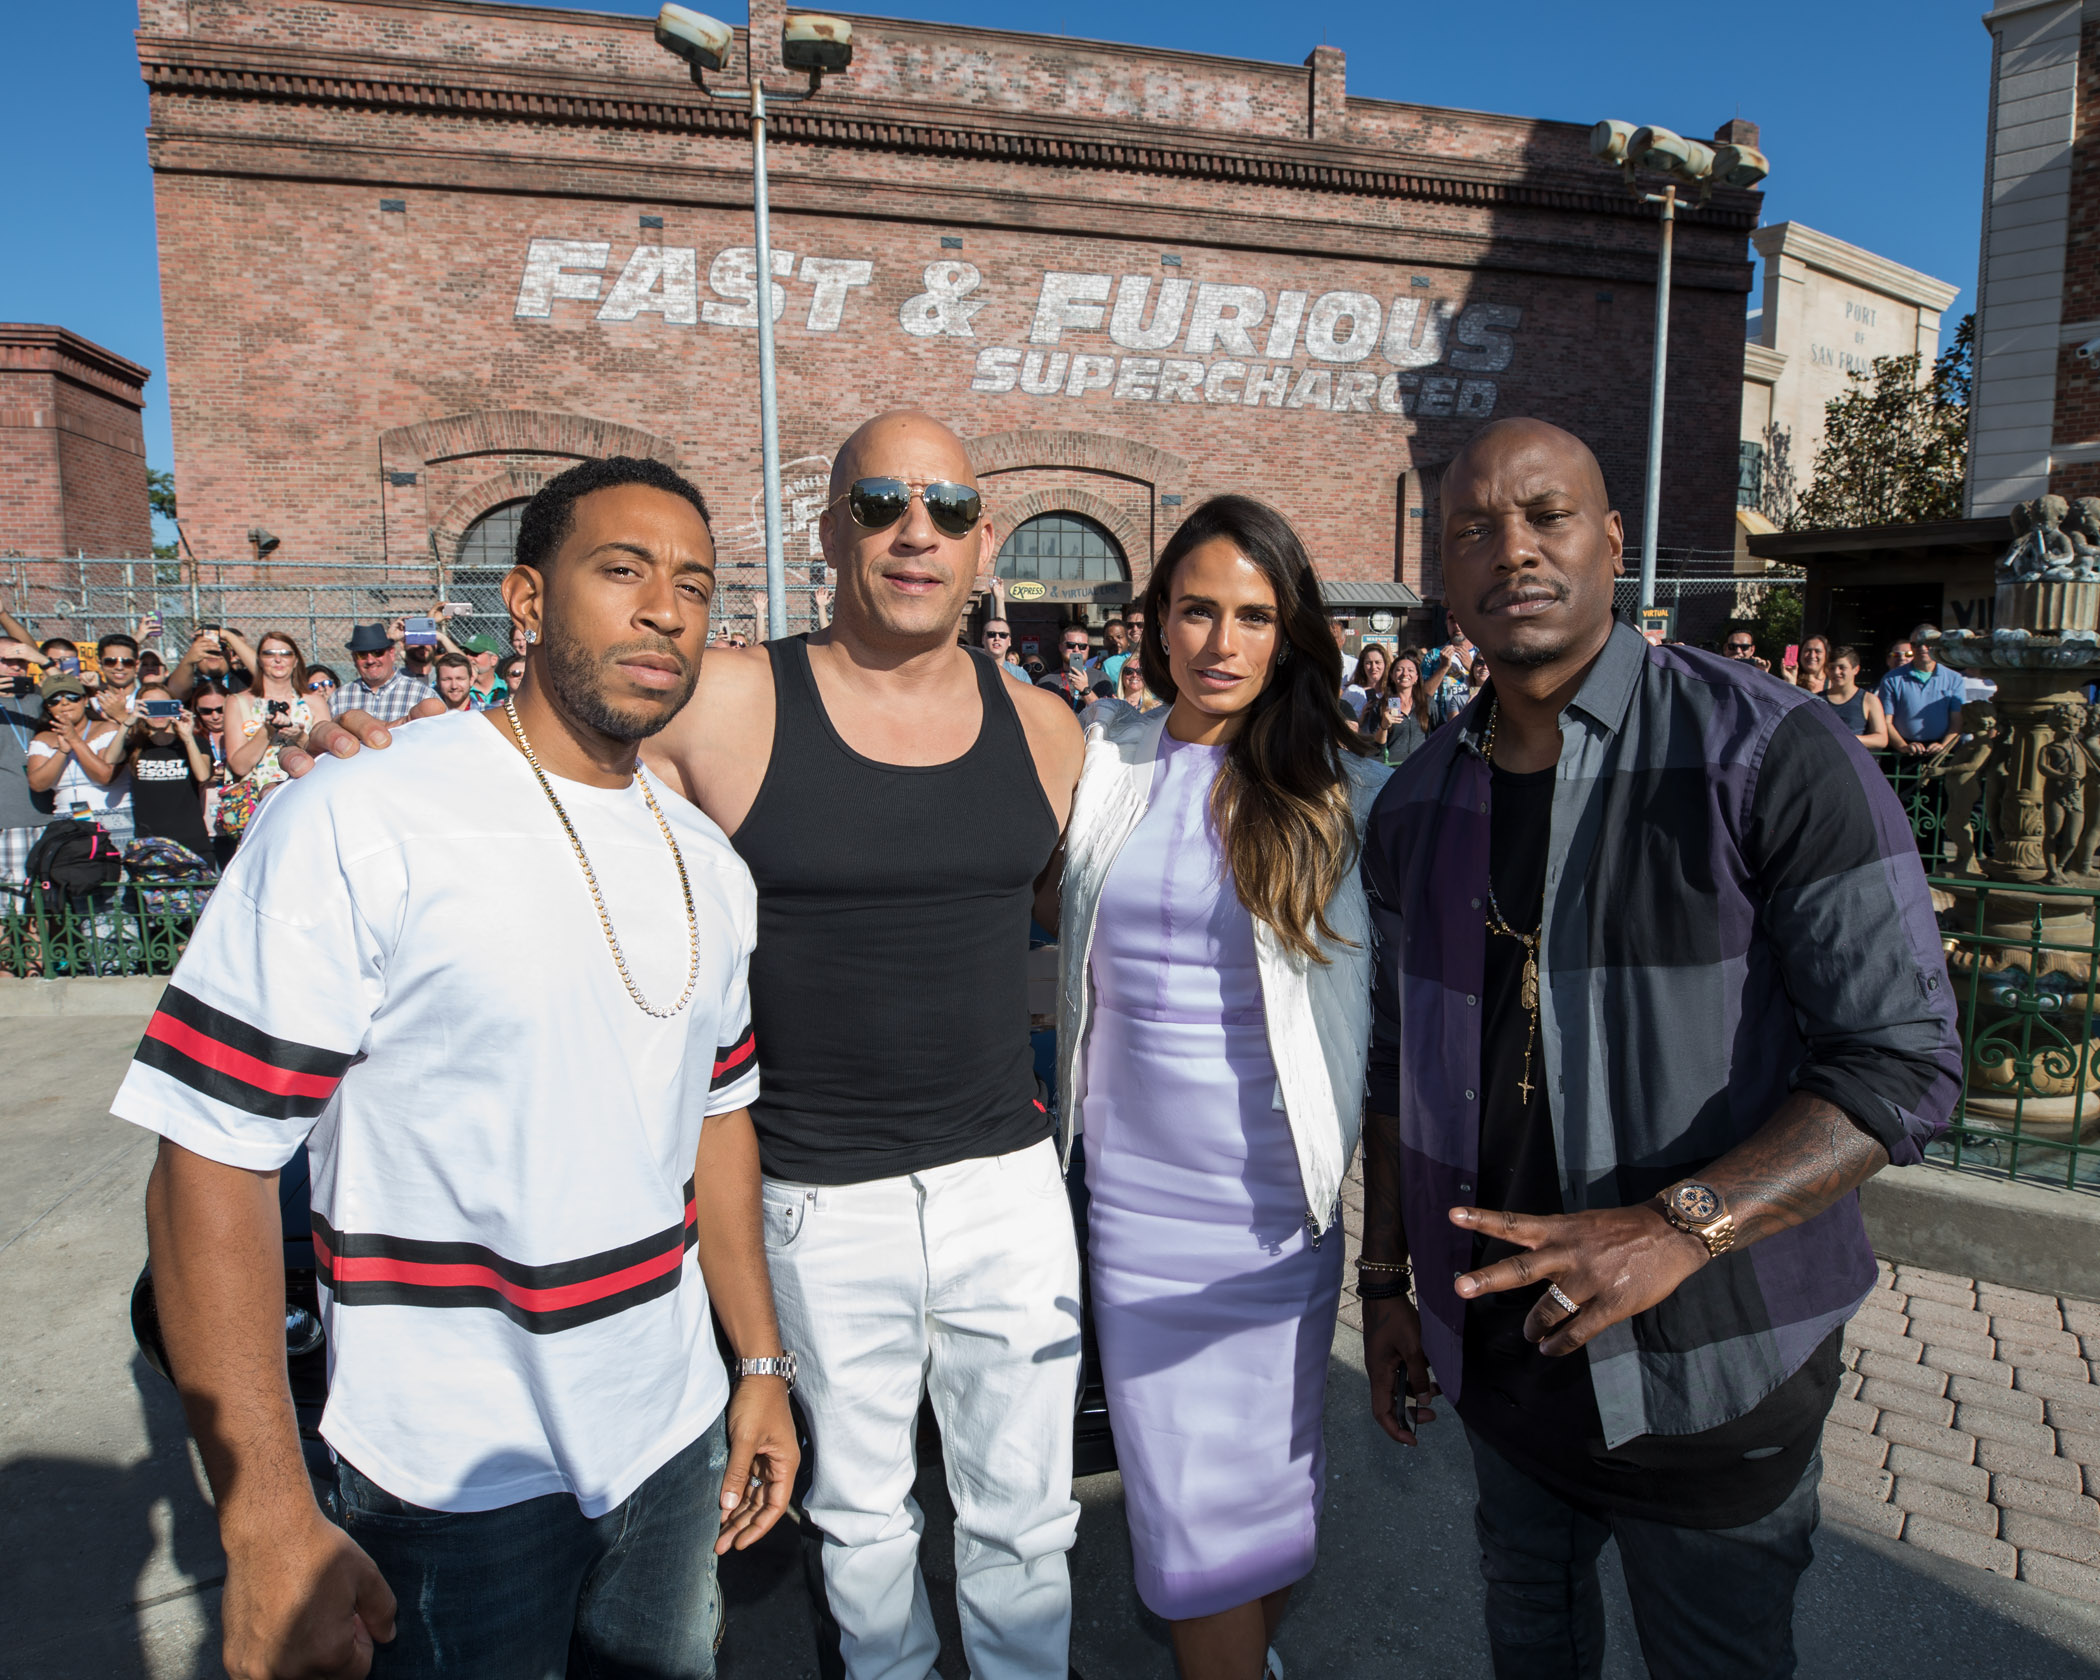 Fats and Furious Media pic 2